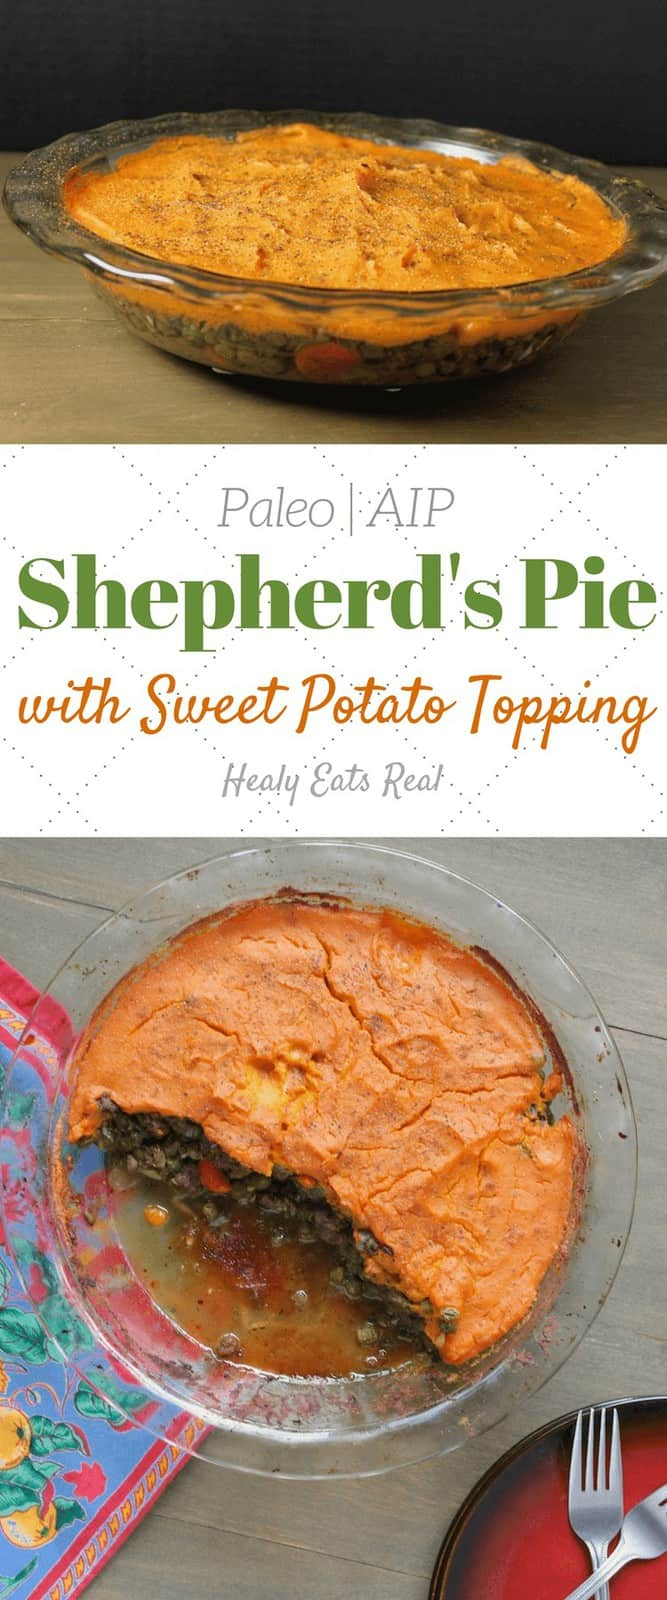 Shepherds Pie Recipe with Sweet Potato Topping (Paleo, AIP)- This shepherds pie recipe is the best simple classic fall or winter meal. Made with grassfed ground beef and veggies, it's a hearty, affordable and healthy dinner staple.